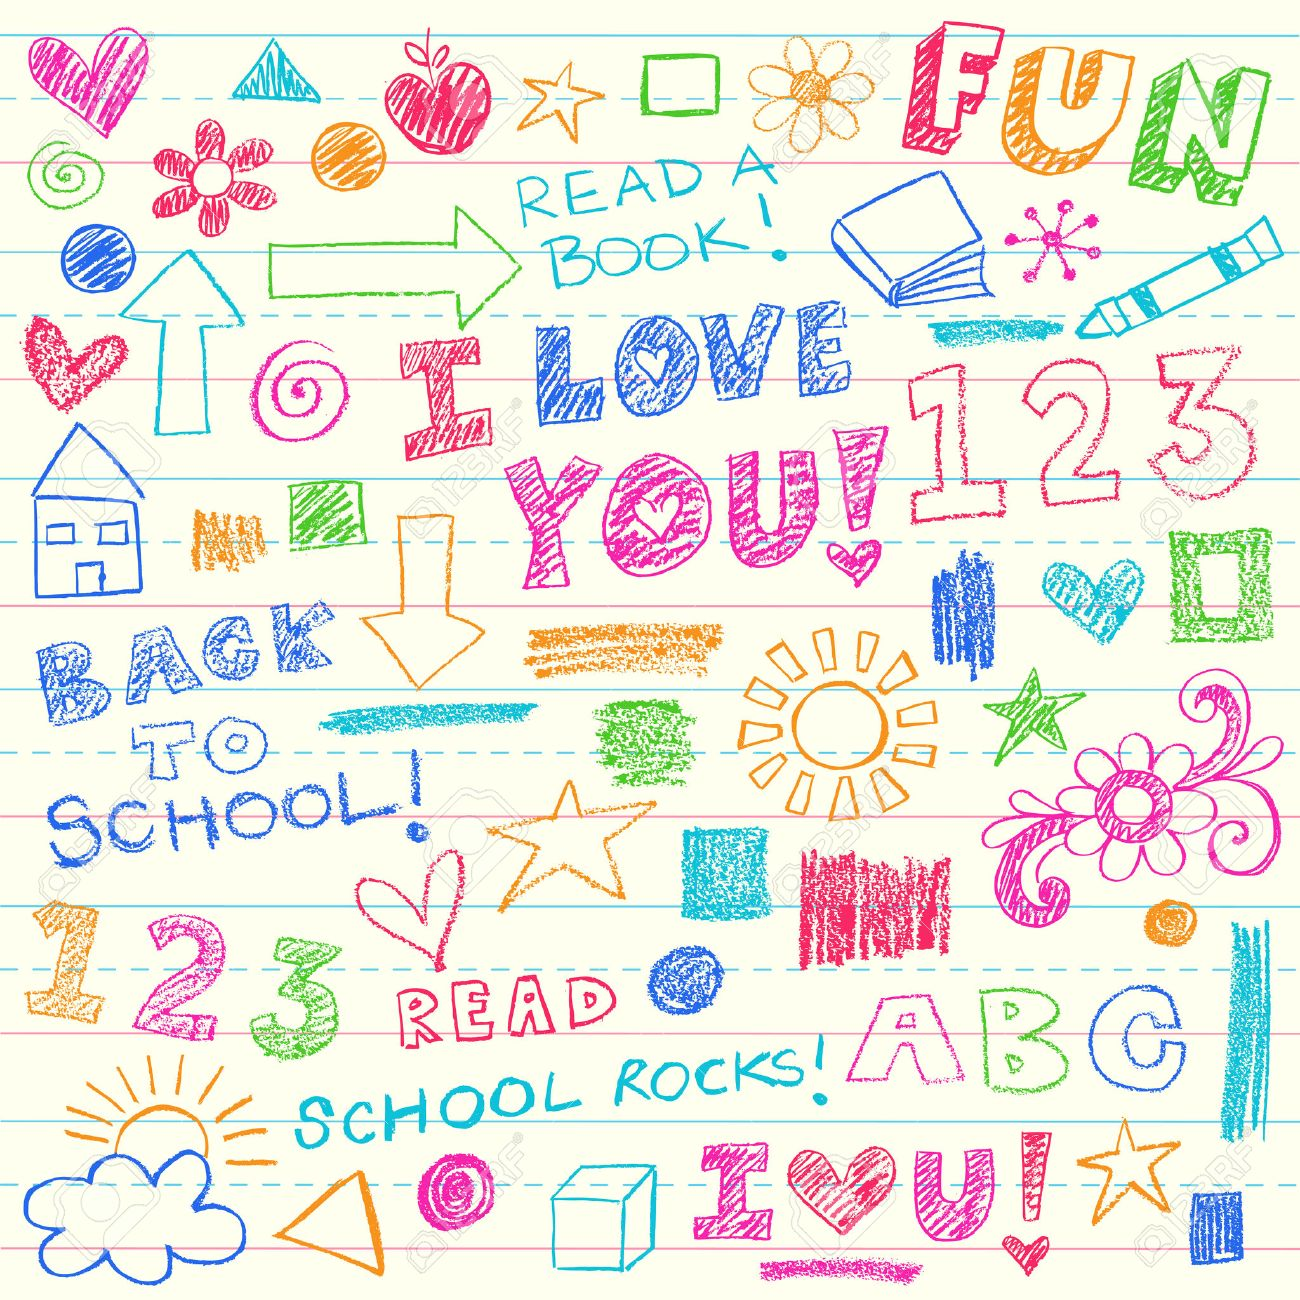 HandDrawn Kids Crayon Notebook Doodles Design Elements Set On – Design Paper for Writing